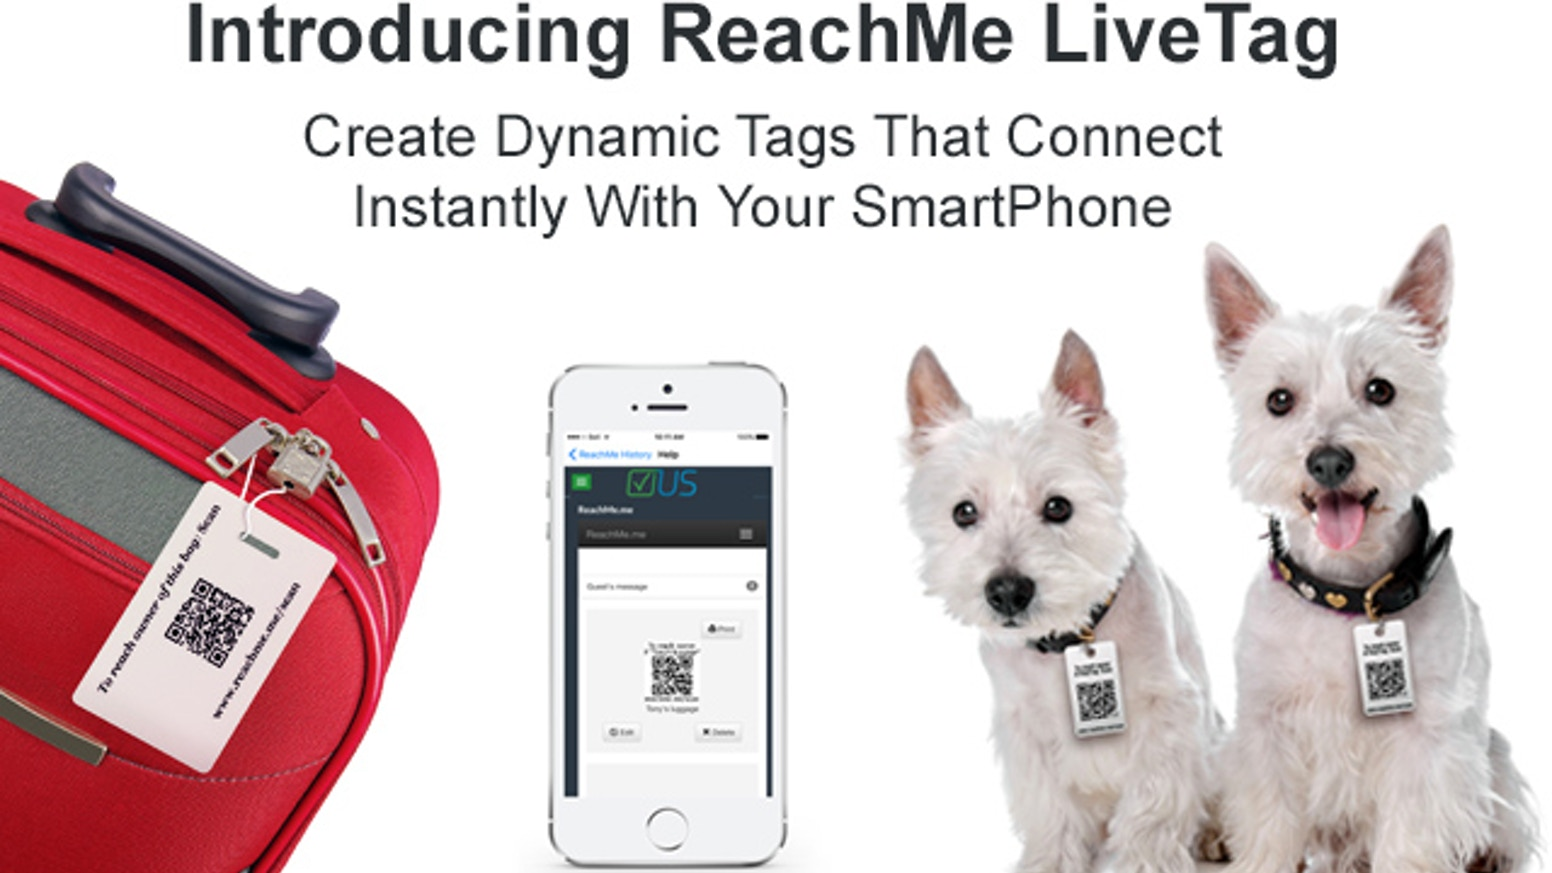 2 smart doorbell smart dog tag and luggage tag by jason lim